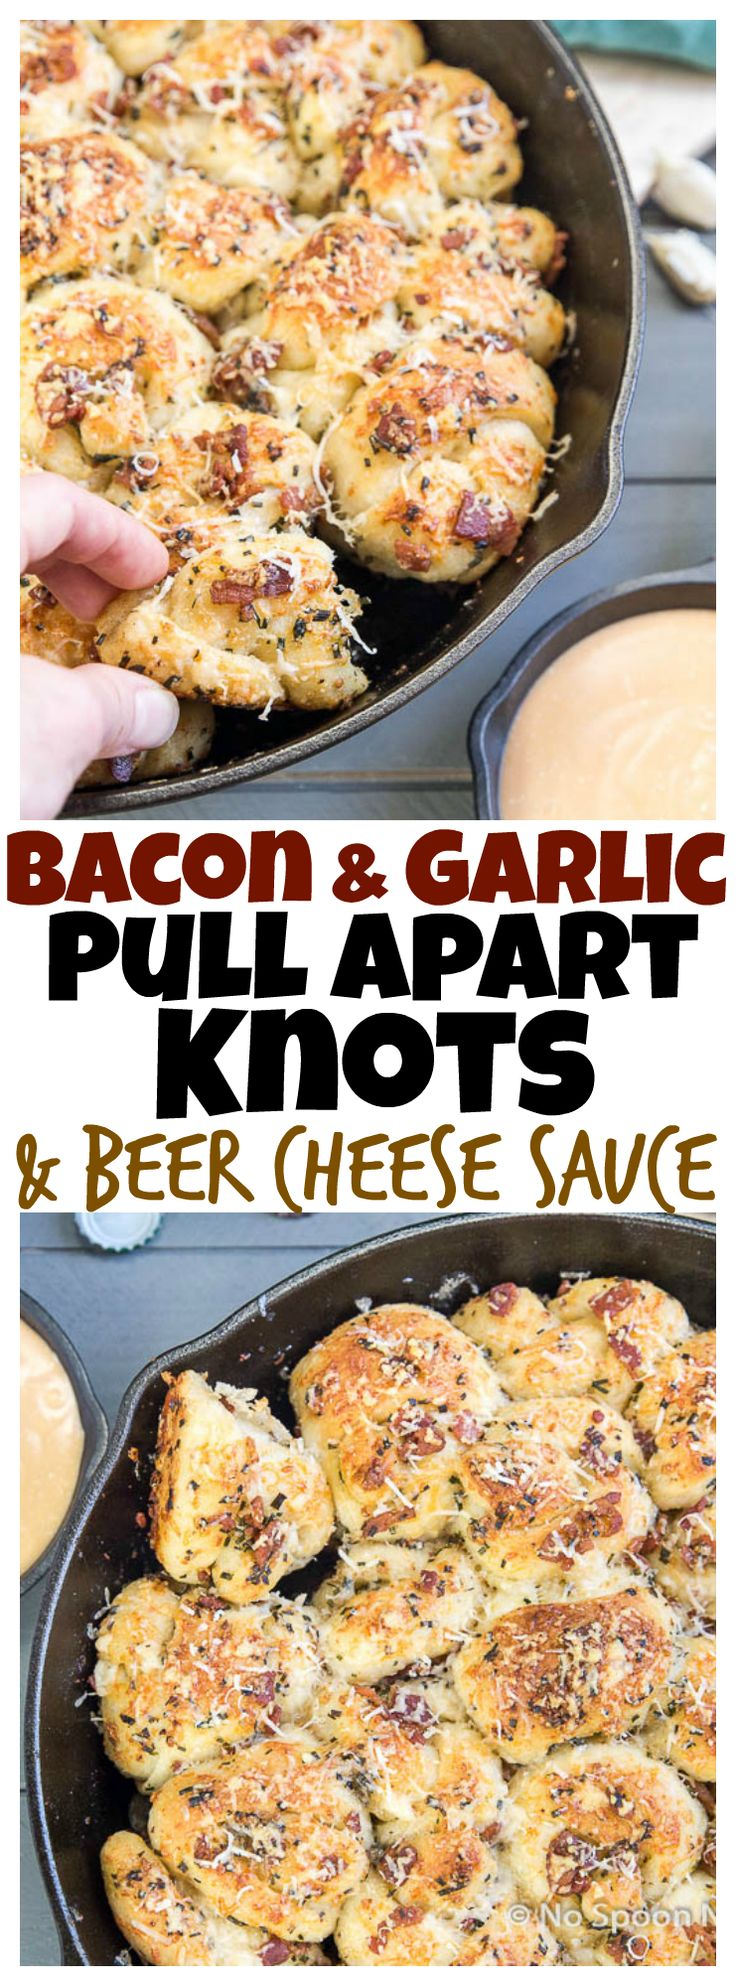 Easy Bacon & Garlic Pull Apart Knots with Beer Cheese Sauce